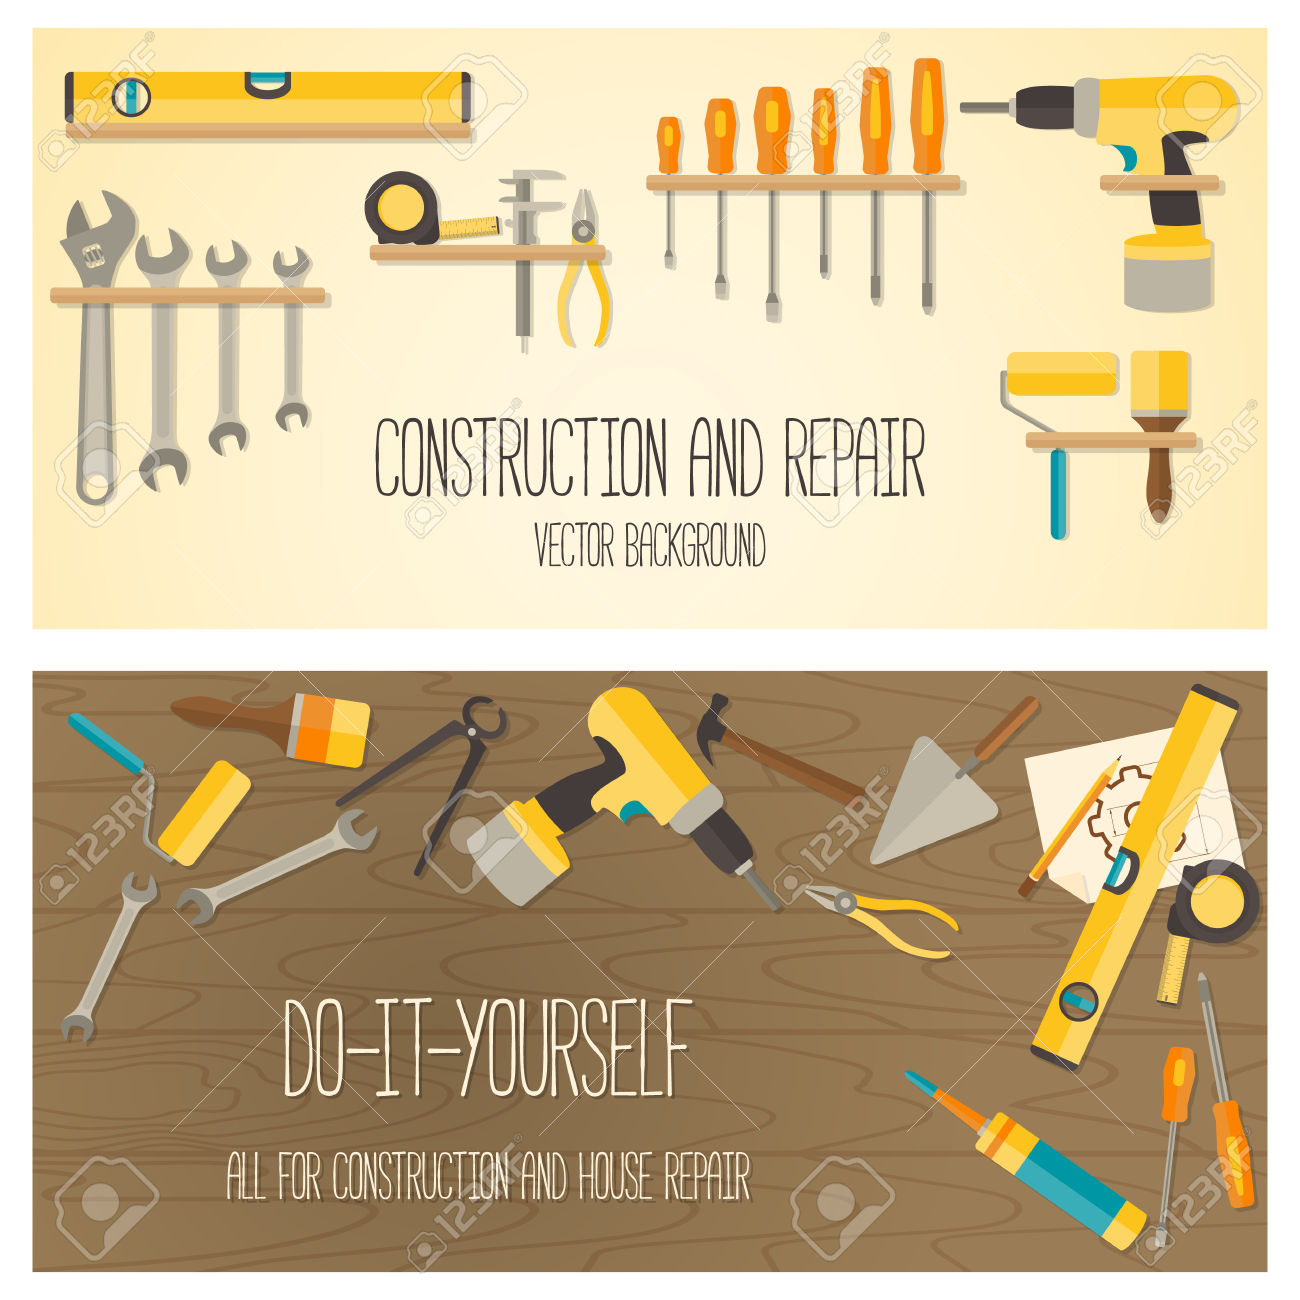 5 Tools That Are a Woodworker's Best Friends